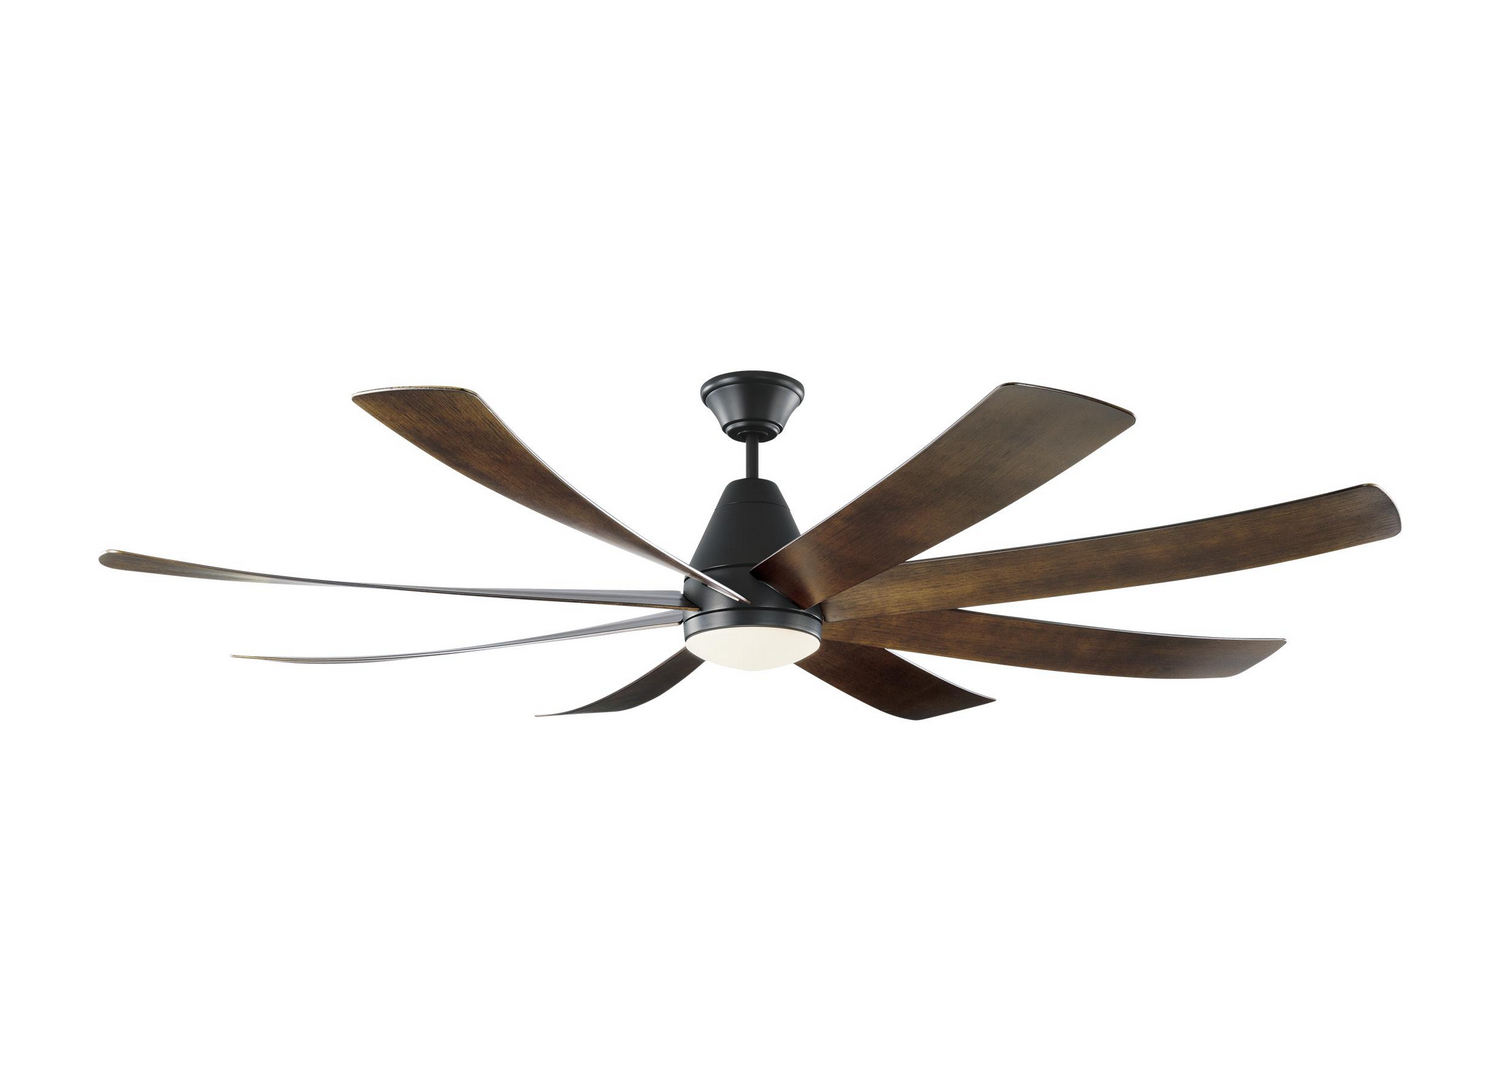 72 inchCeiling Fan from the Kingston collection by Monte Carlo 8KGR72BKD